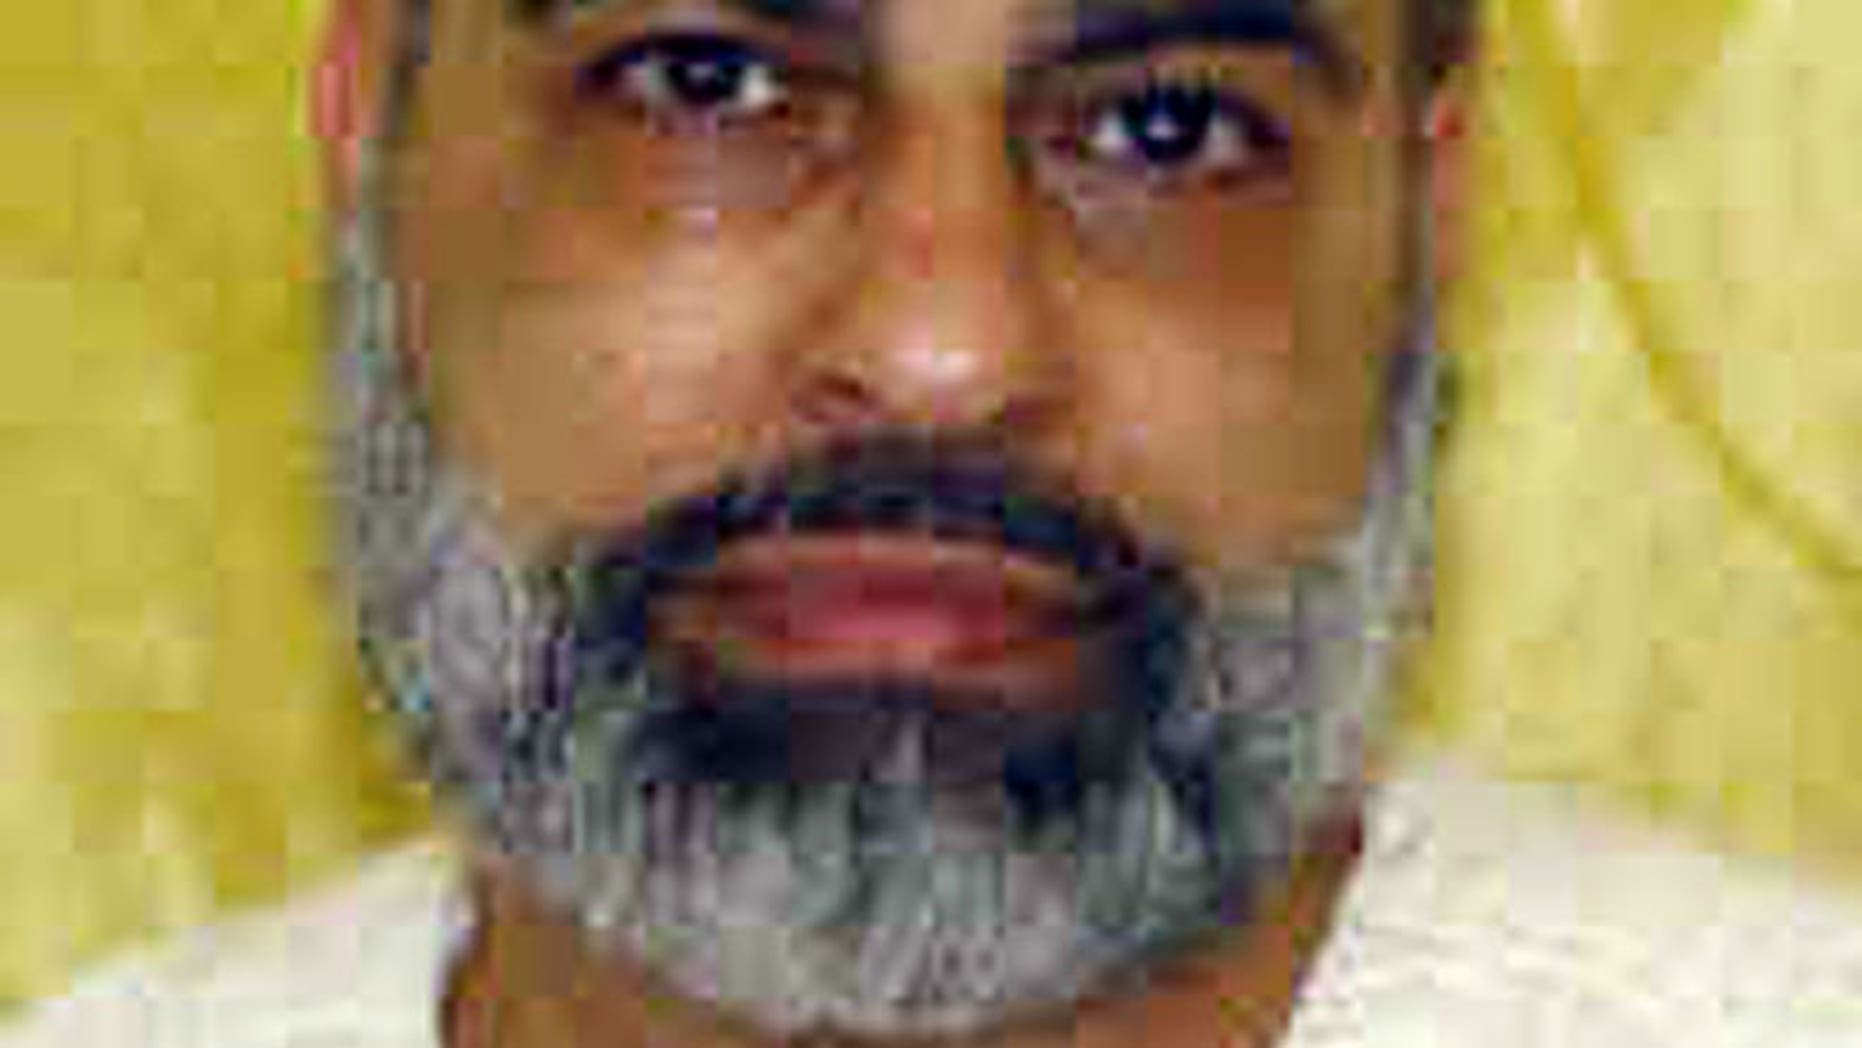 This undated file photo provided by the Ohio Department of Rehabilitation and Correction shows Abdul Awkal, convicted in the 1992 slayings of his estranged wife and brother-in-law at a courthouse in Cleveland's Cuyahoga County.